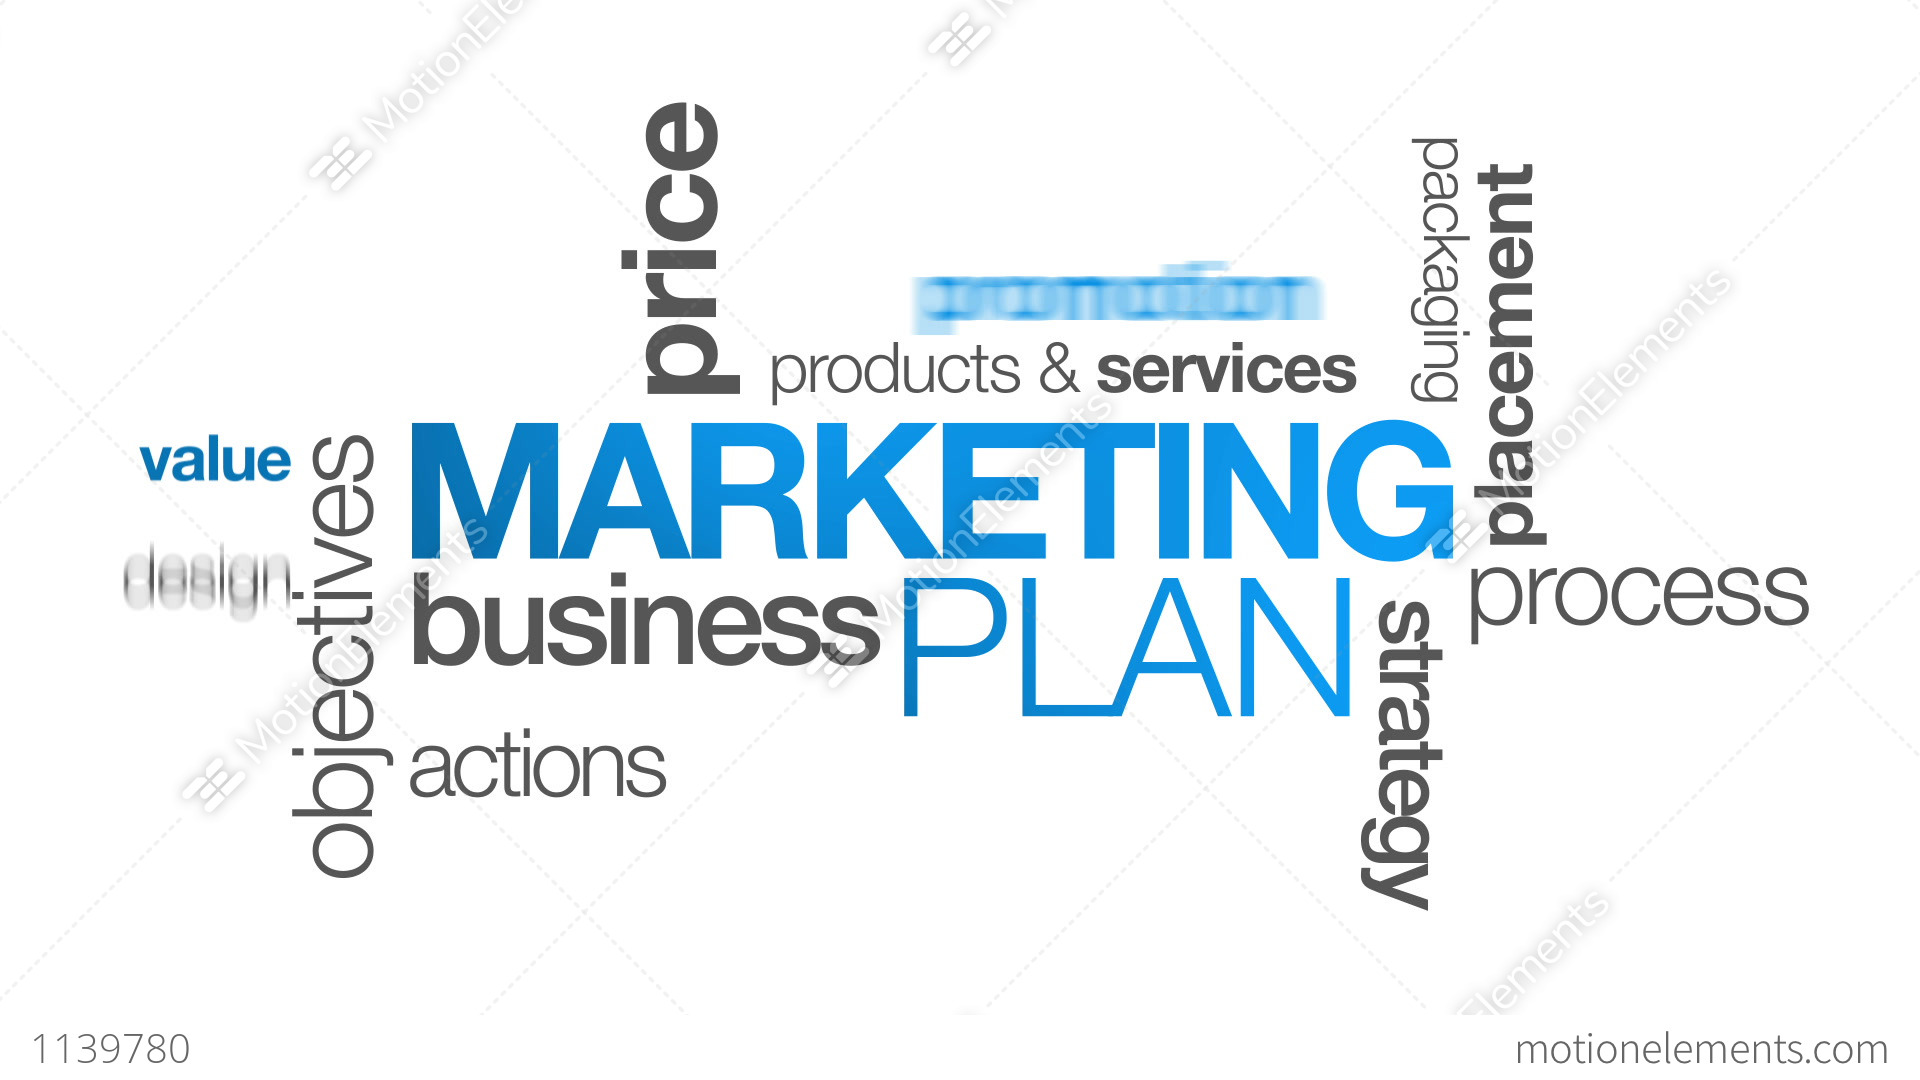 me1139780-marketing-plan-hd-a0120.jpg